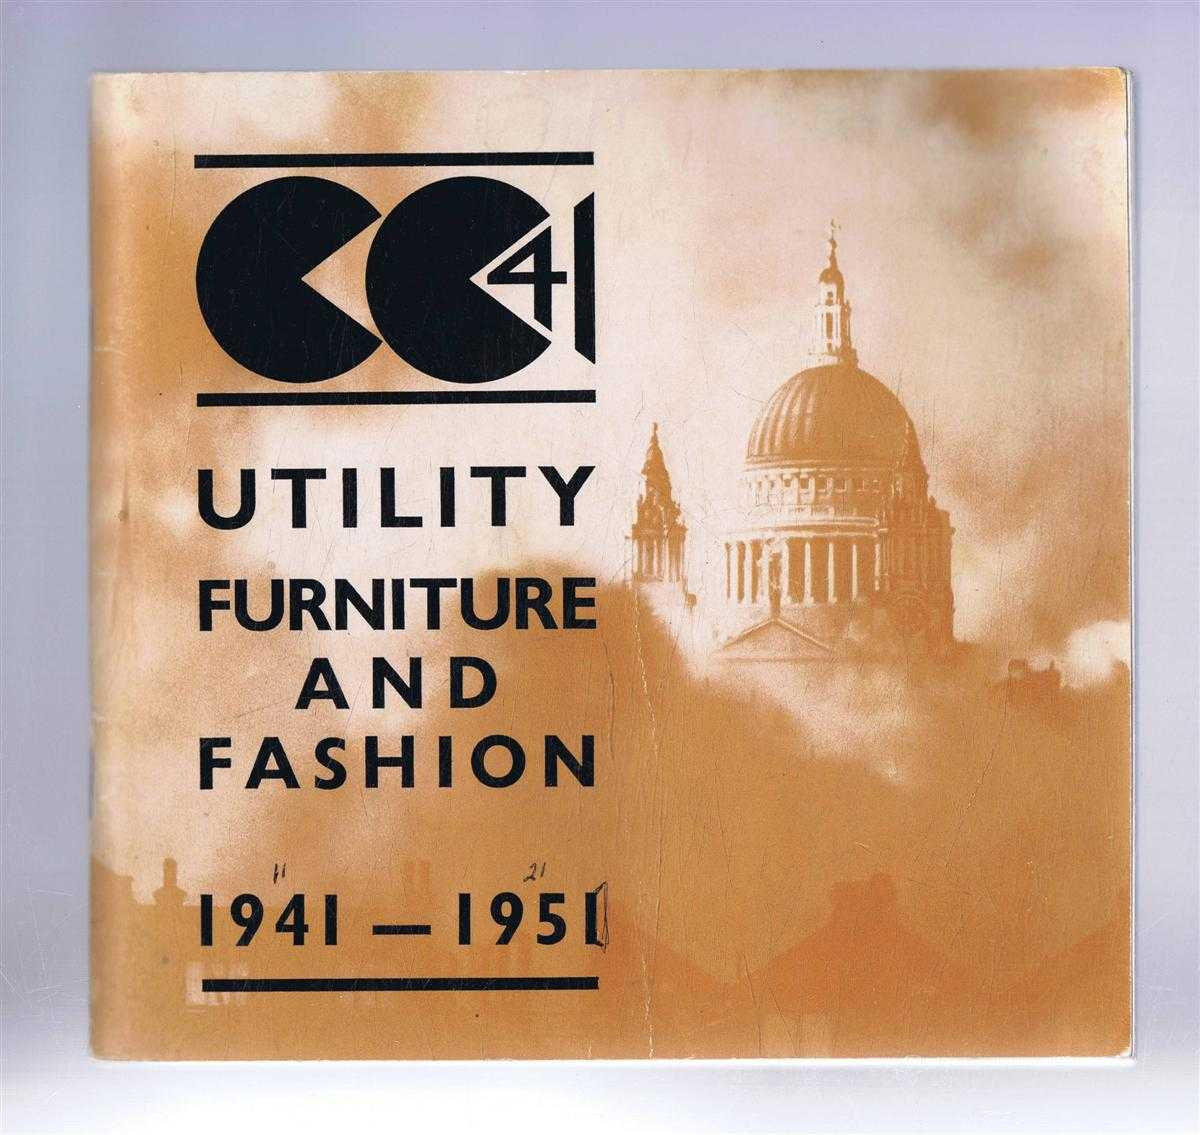 CC41 Utility Furniture and Fashioin 1941-1951, Exhibition at Geffrye Museum, London, 24 September - 29 December 1974, Foreword by Jeffrey Daniels; Introduction by John Vaizey. Also Jane Ashelford, David Mellor, Bob Carter, Gillian Naylor,